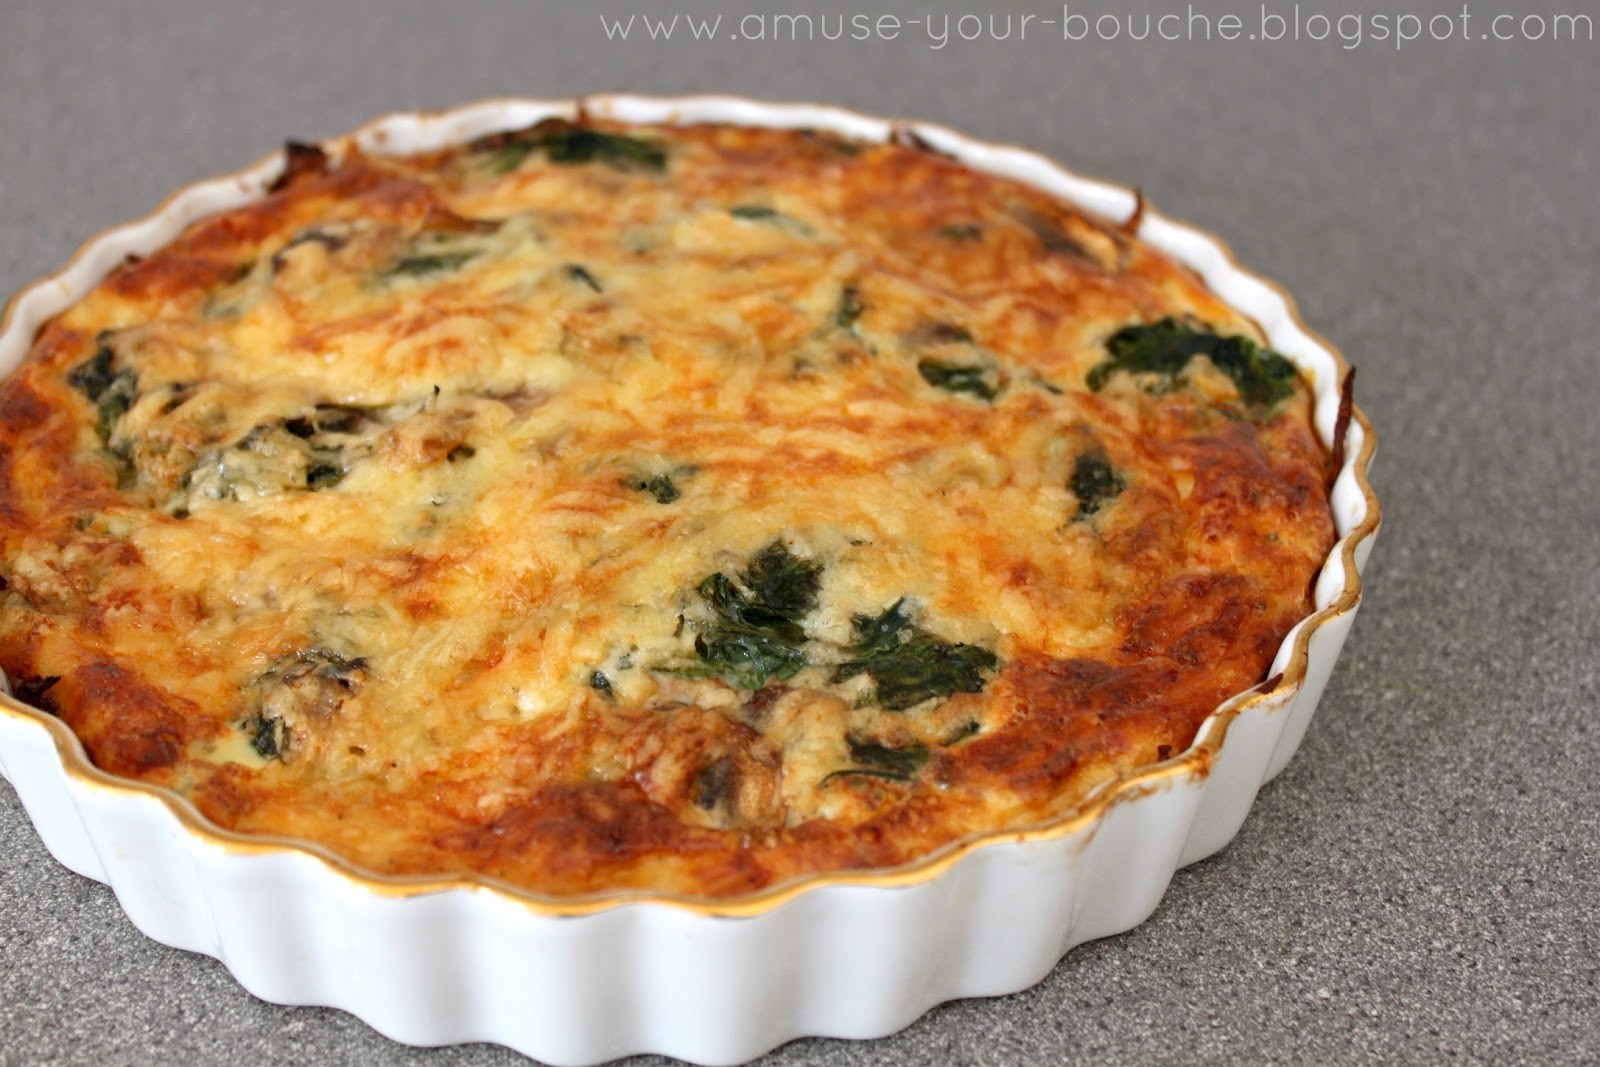 Mushroom Quiche Recipe  Spinach and mushroom quiche with potato hash crust Amuse